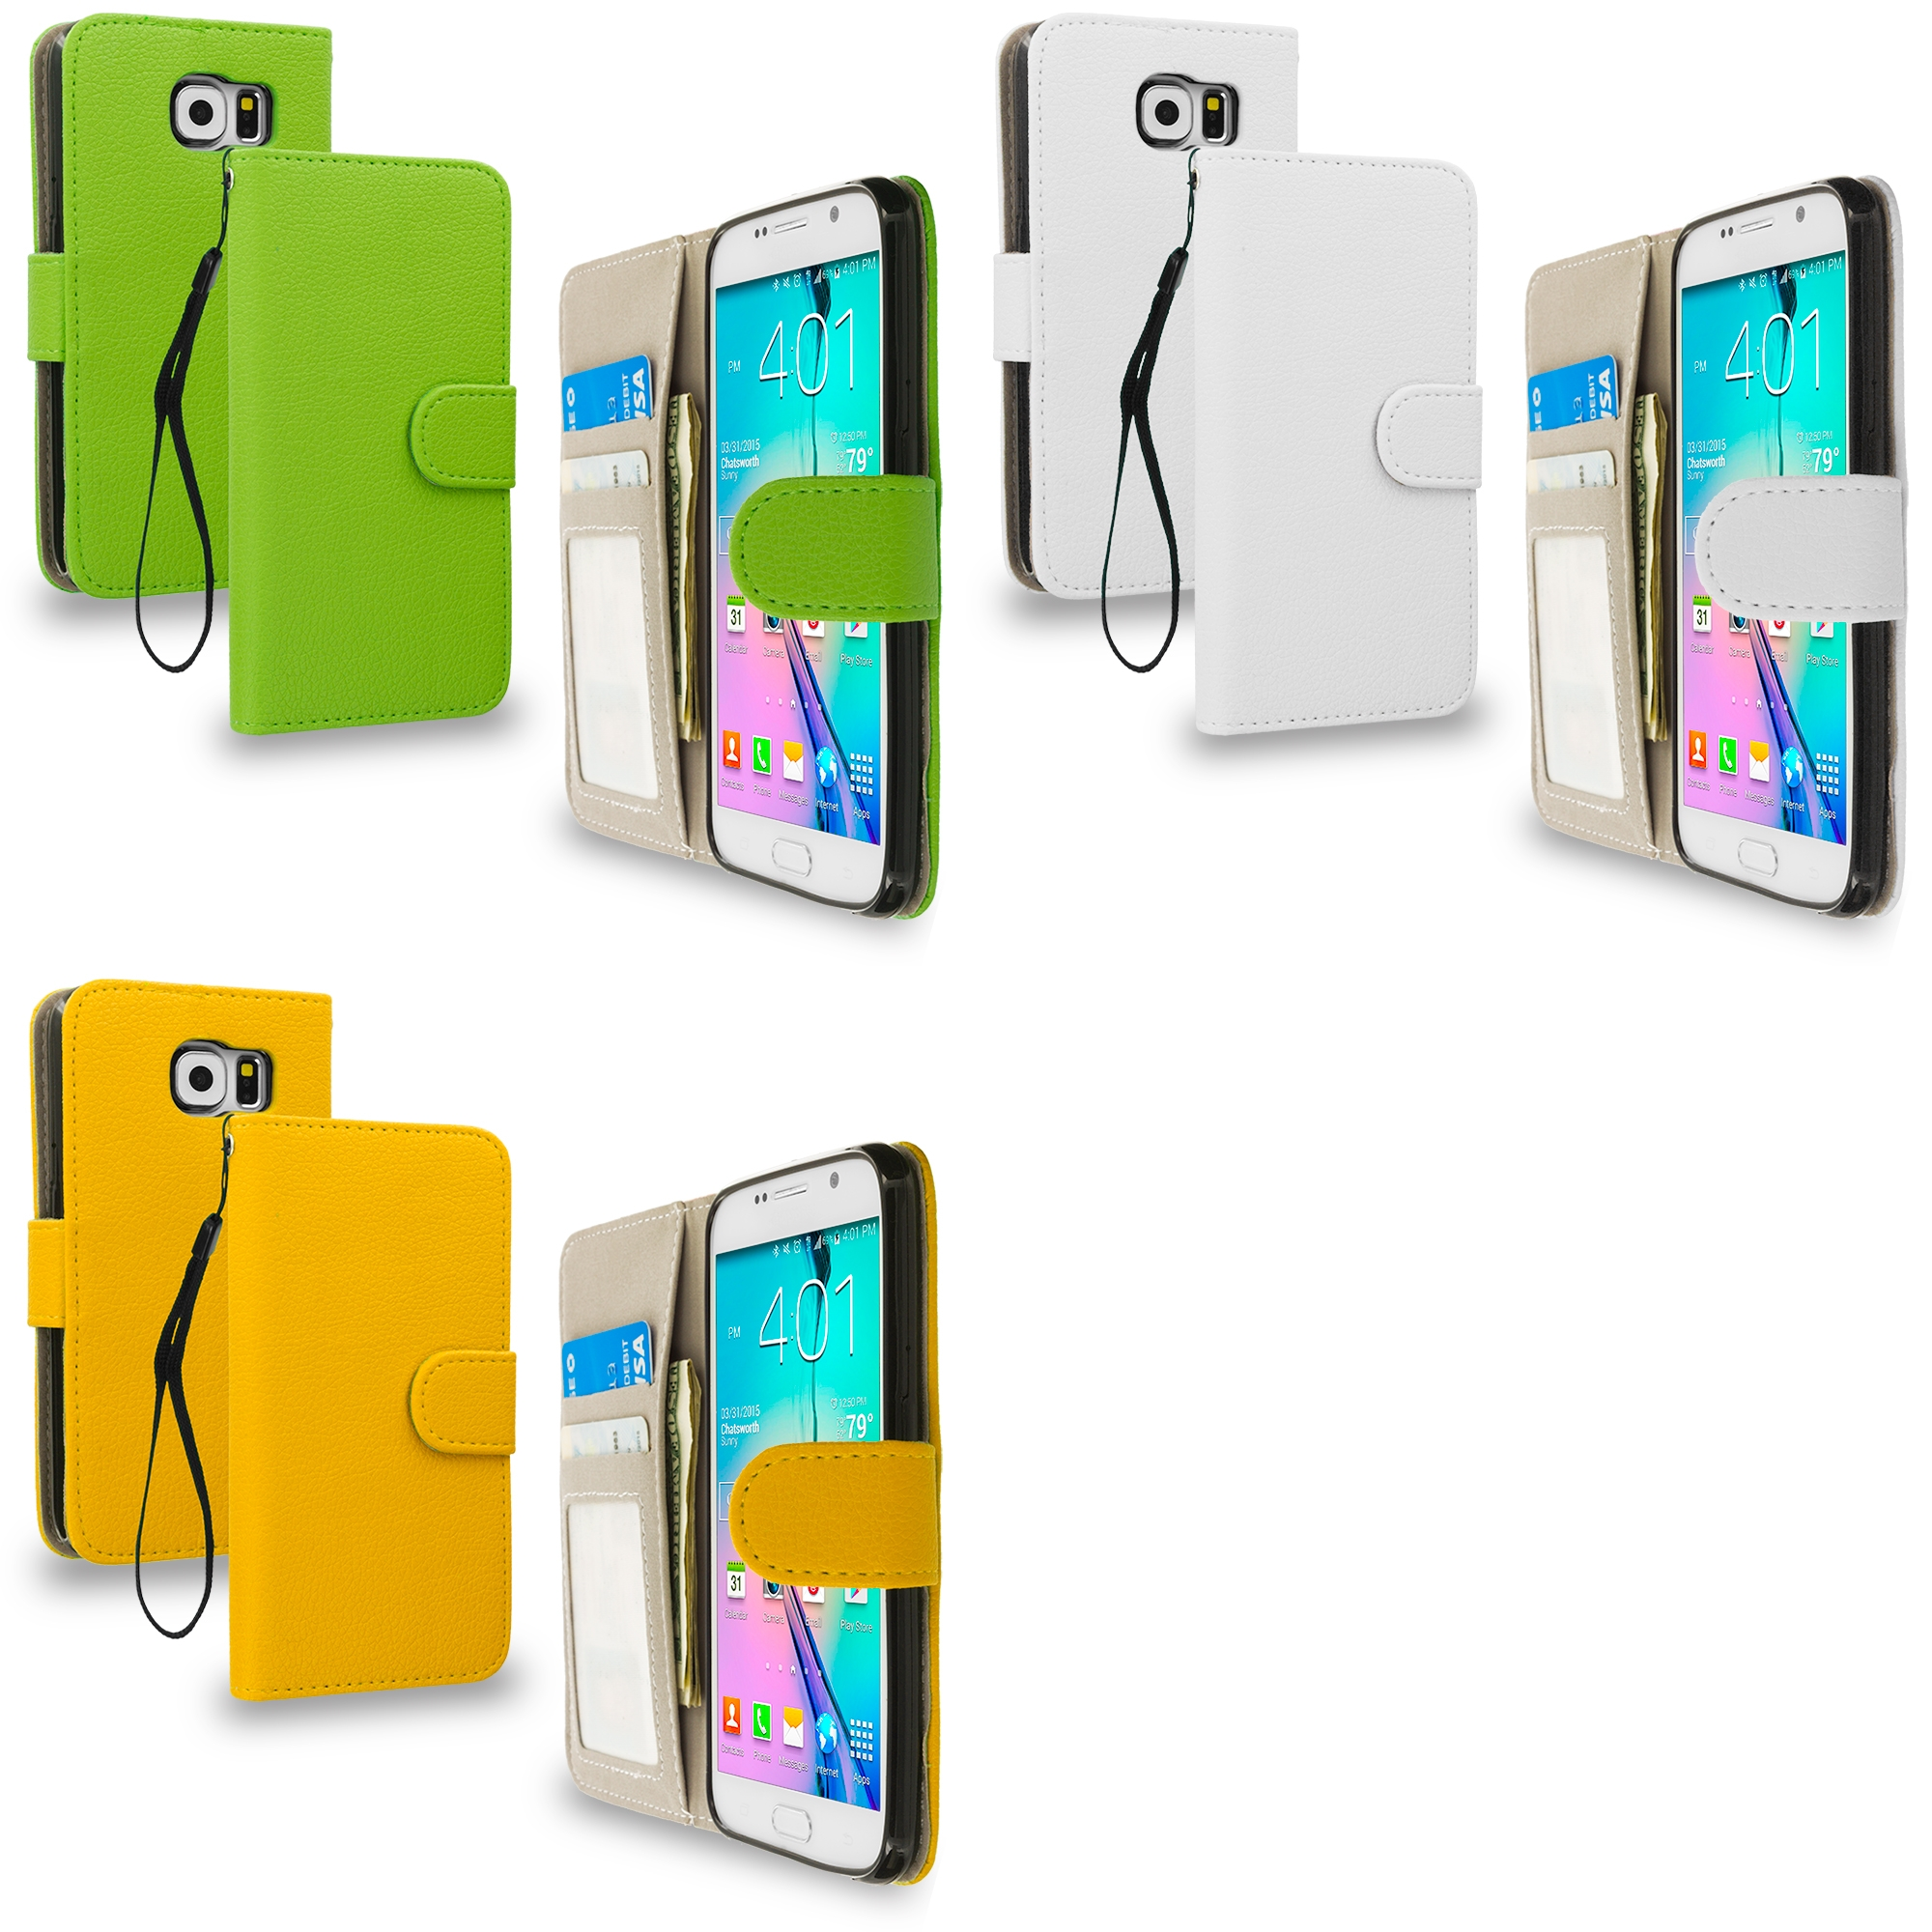 Samsung Galaxy S6 Combo Pack : Neon Green Leather Wallet Pouch Case Cover with Slots